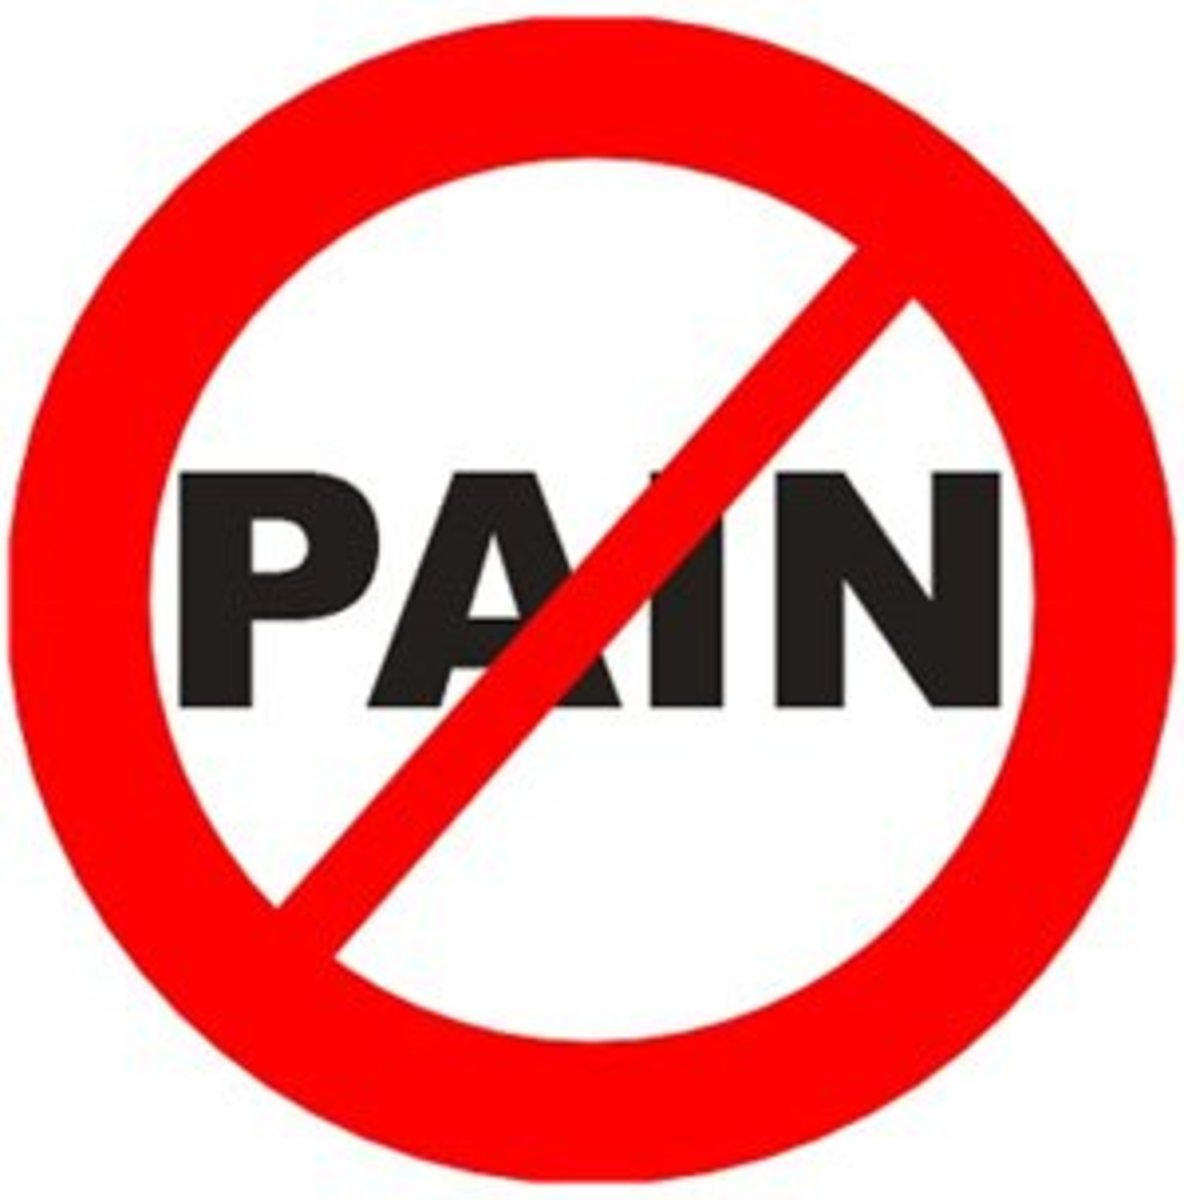 Pain Relief Gadgets, Machines, Devices and How To Stop, Reduce or Alleviate Aches and Discomfort